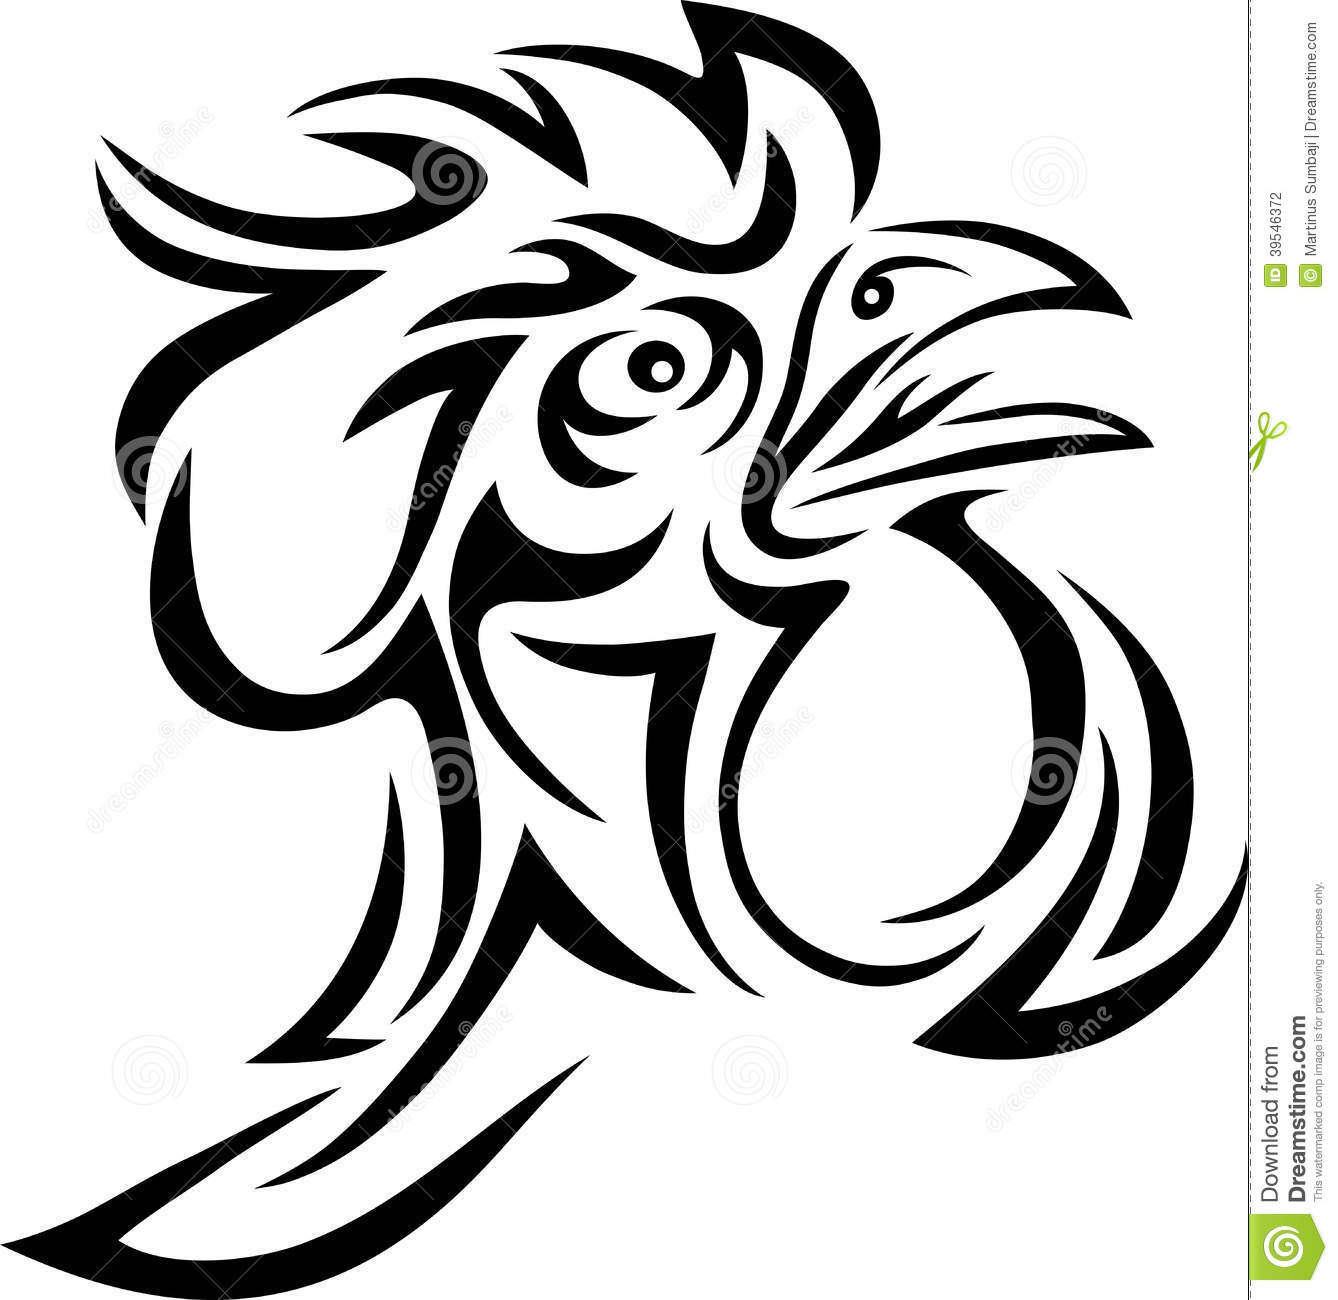 1063475204d33 Rooster tribal stock vector. Illustration of nature, rooster - 39546372